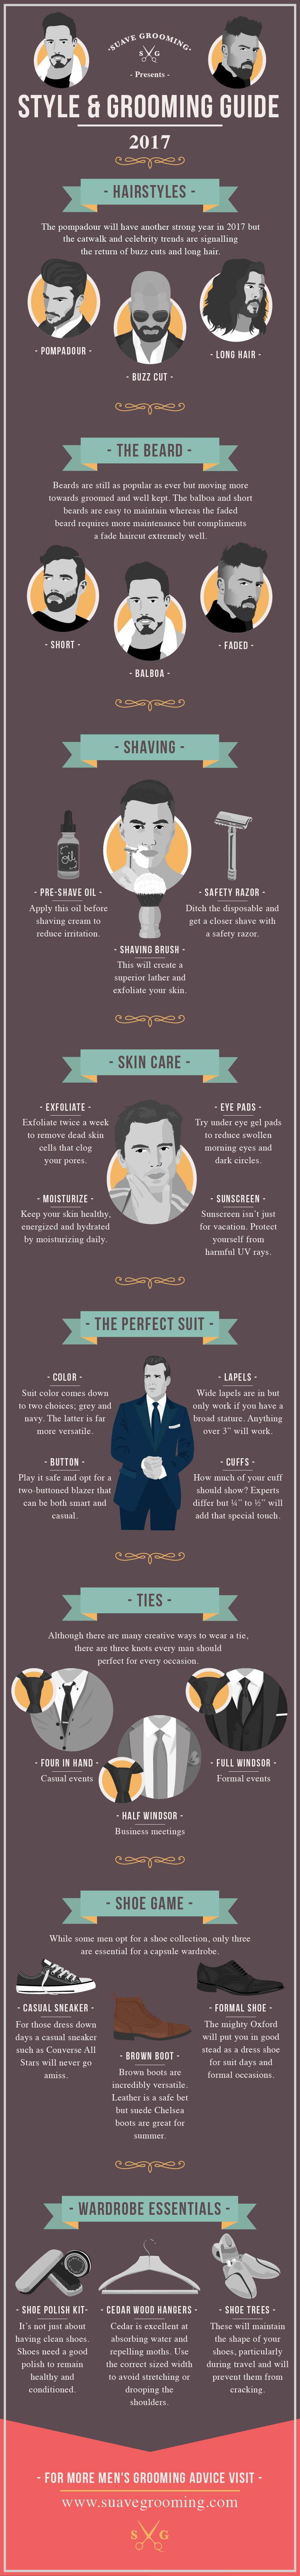 Style And Grooming Guide 2017